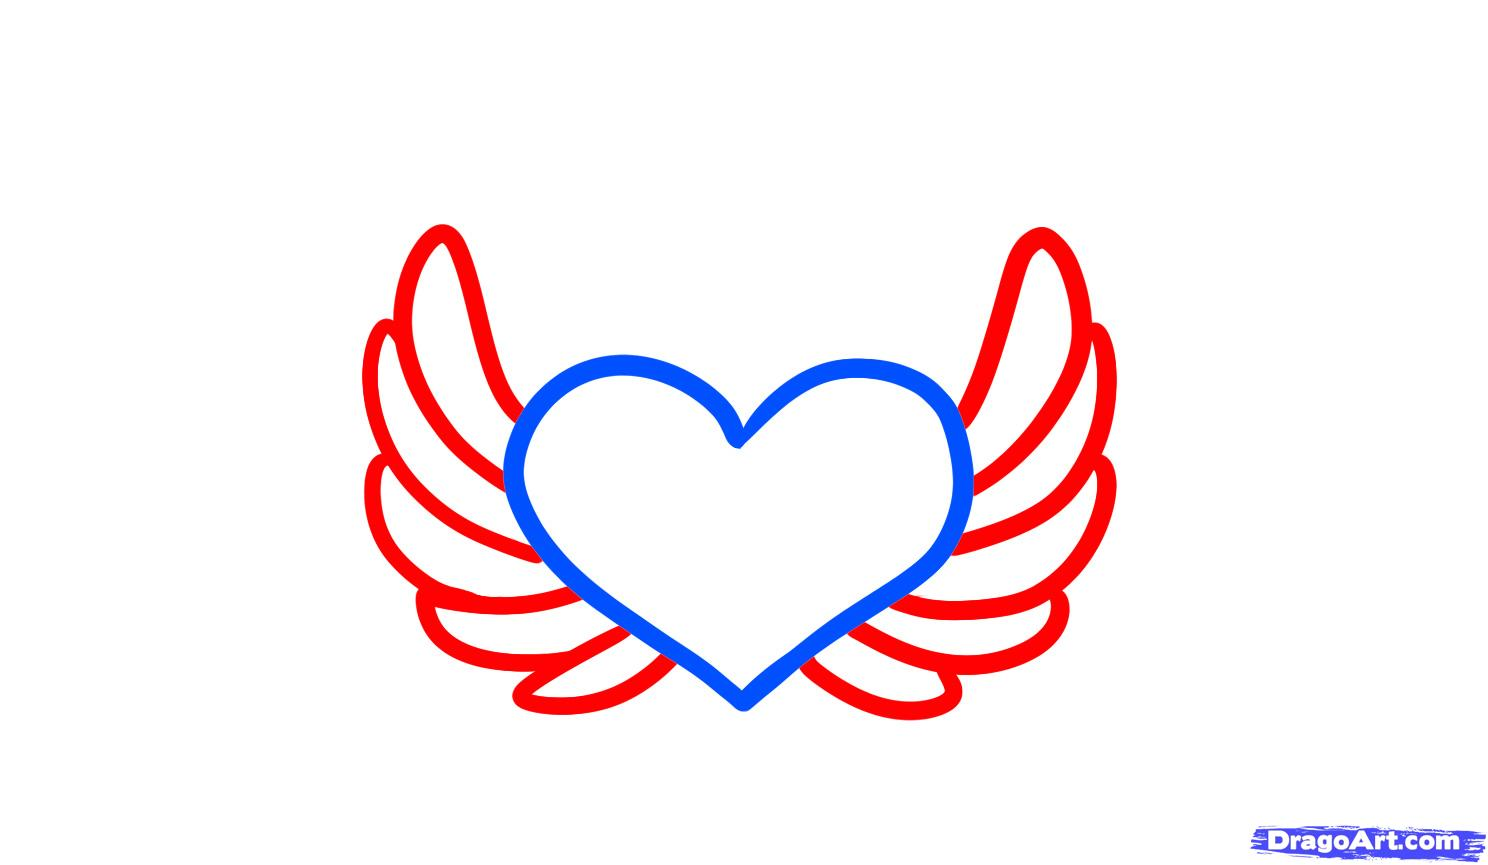 Easy Drawings Of Hearts With Wings - 59.9KB